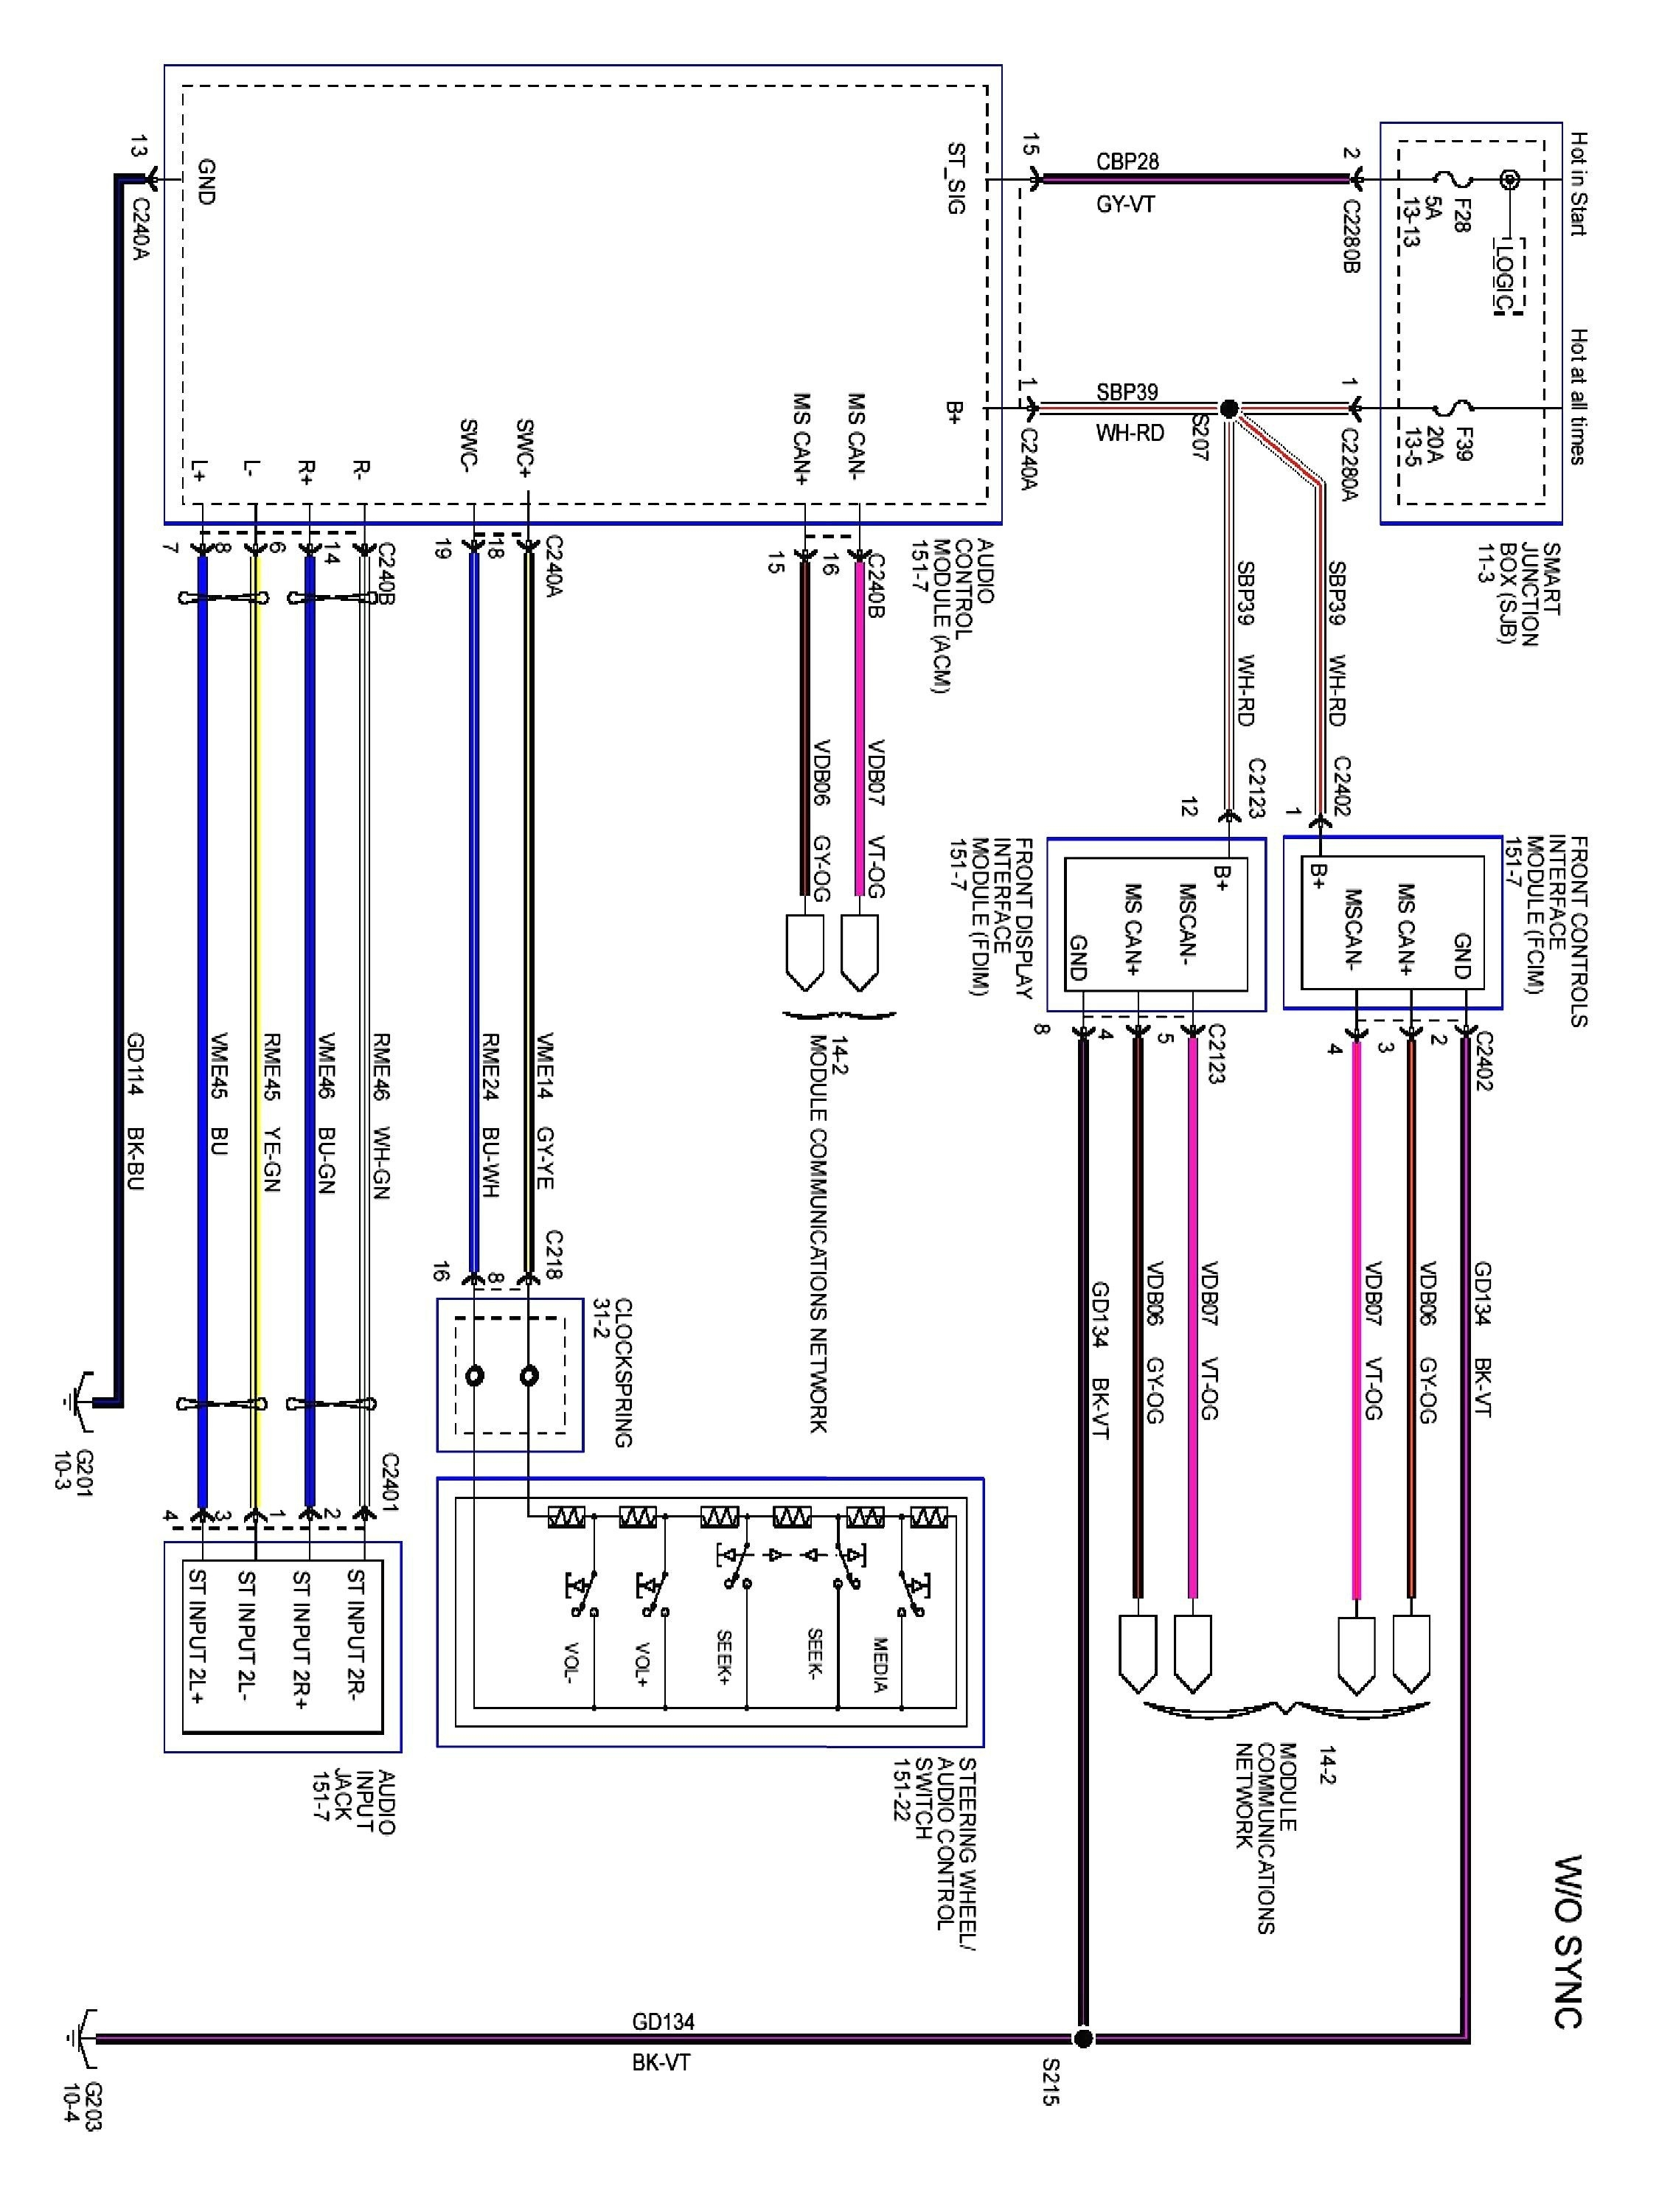 steering wheel radio controls wiring diagram Download-Net Diagram attractive Unique Steering Wheel Radio Controls Wiring Diagram Diagram 34 Great Net Diagram 1-i